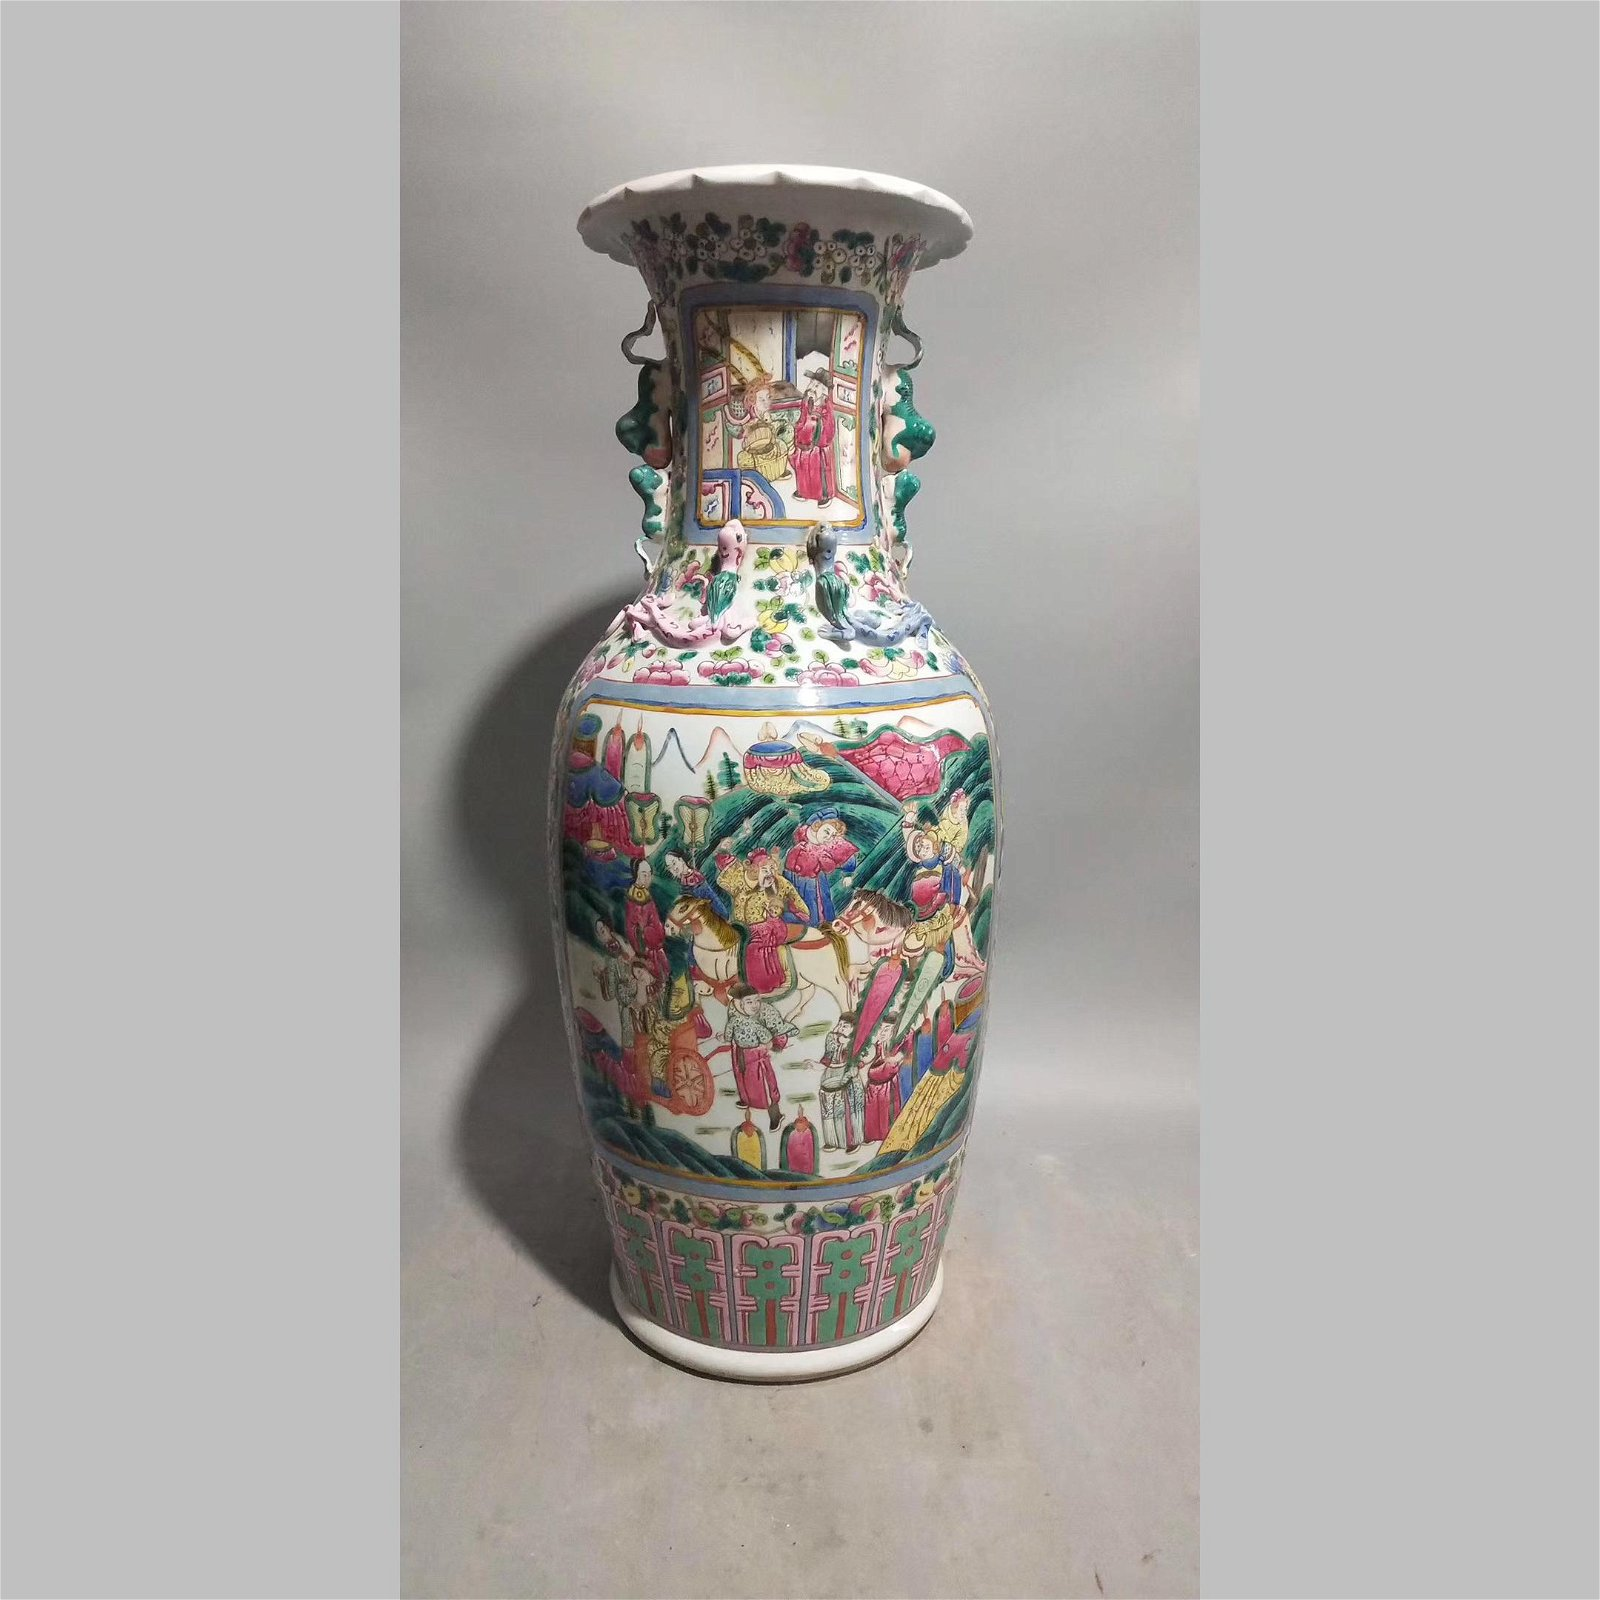 China,19C. A pair of porcelain vase.